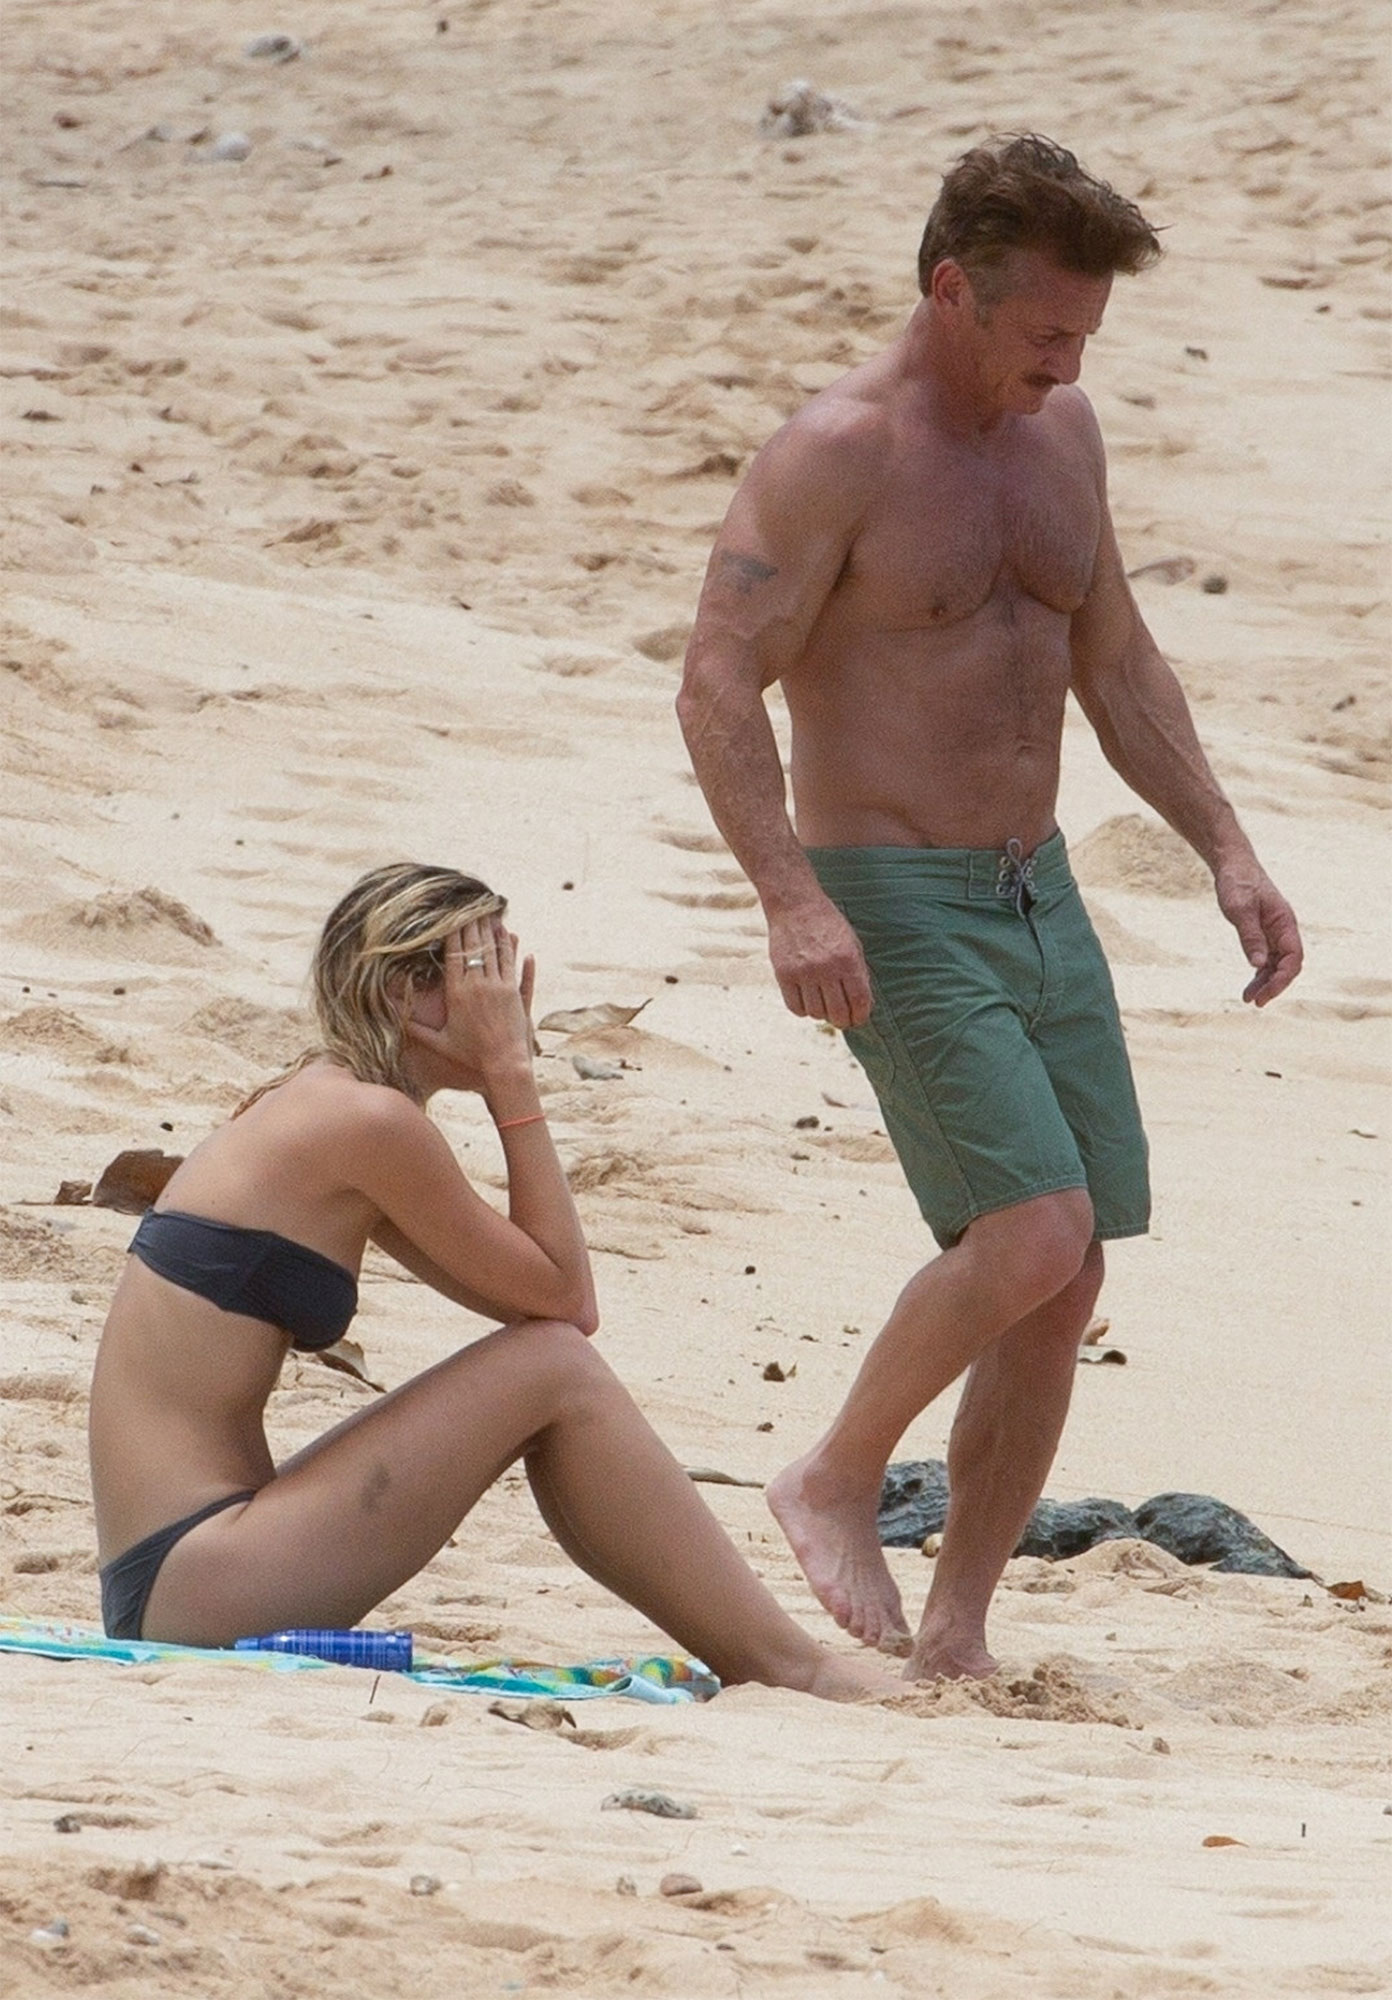 *EXCLUSIVE* Sean Penn vacations with girlfriend Leila George in Oahu